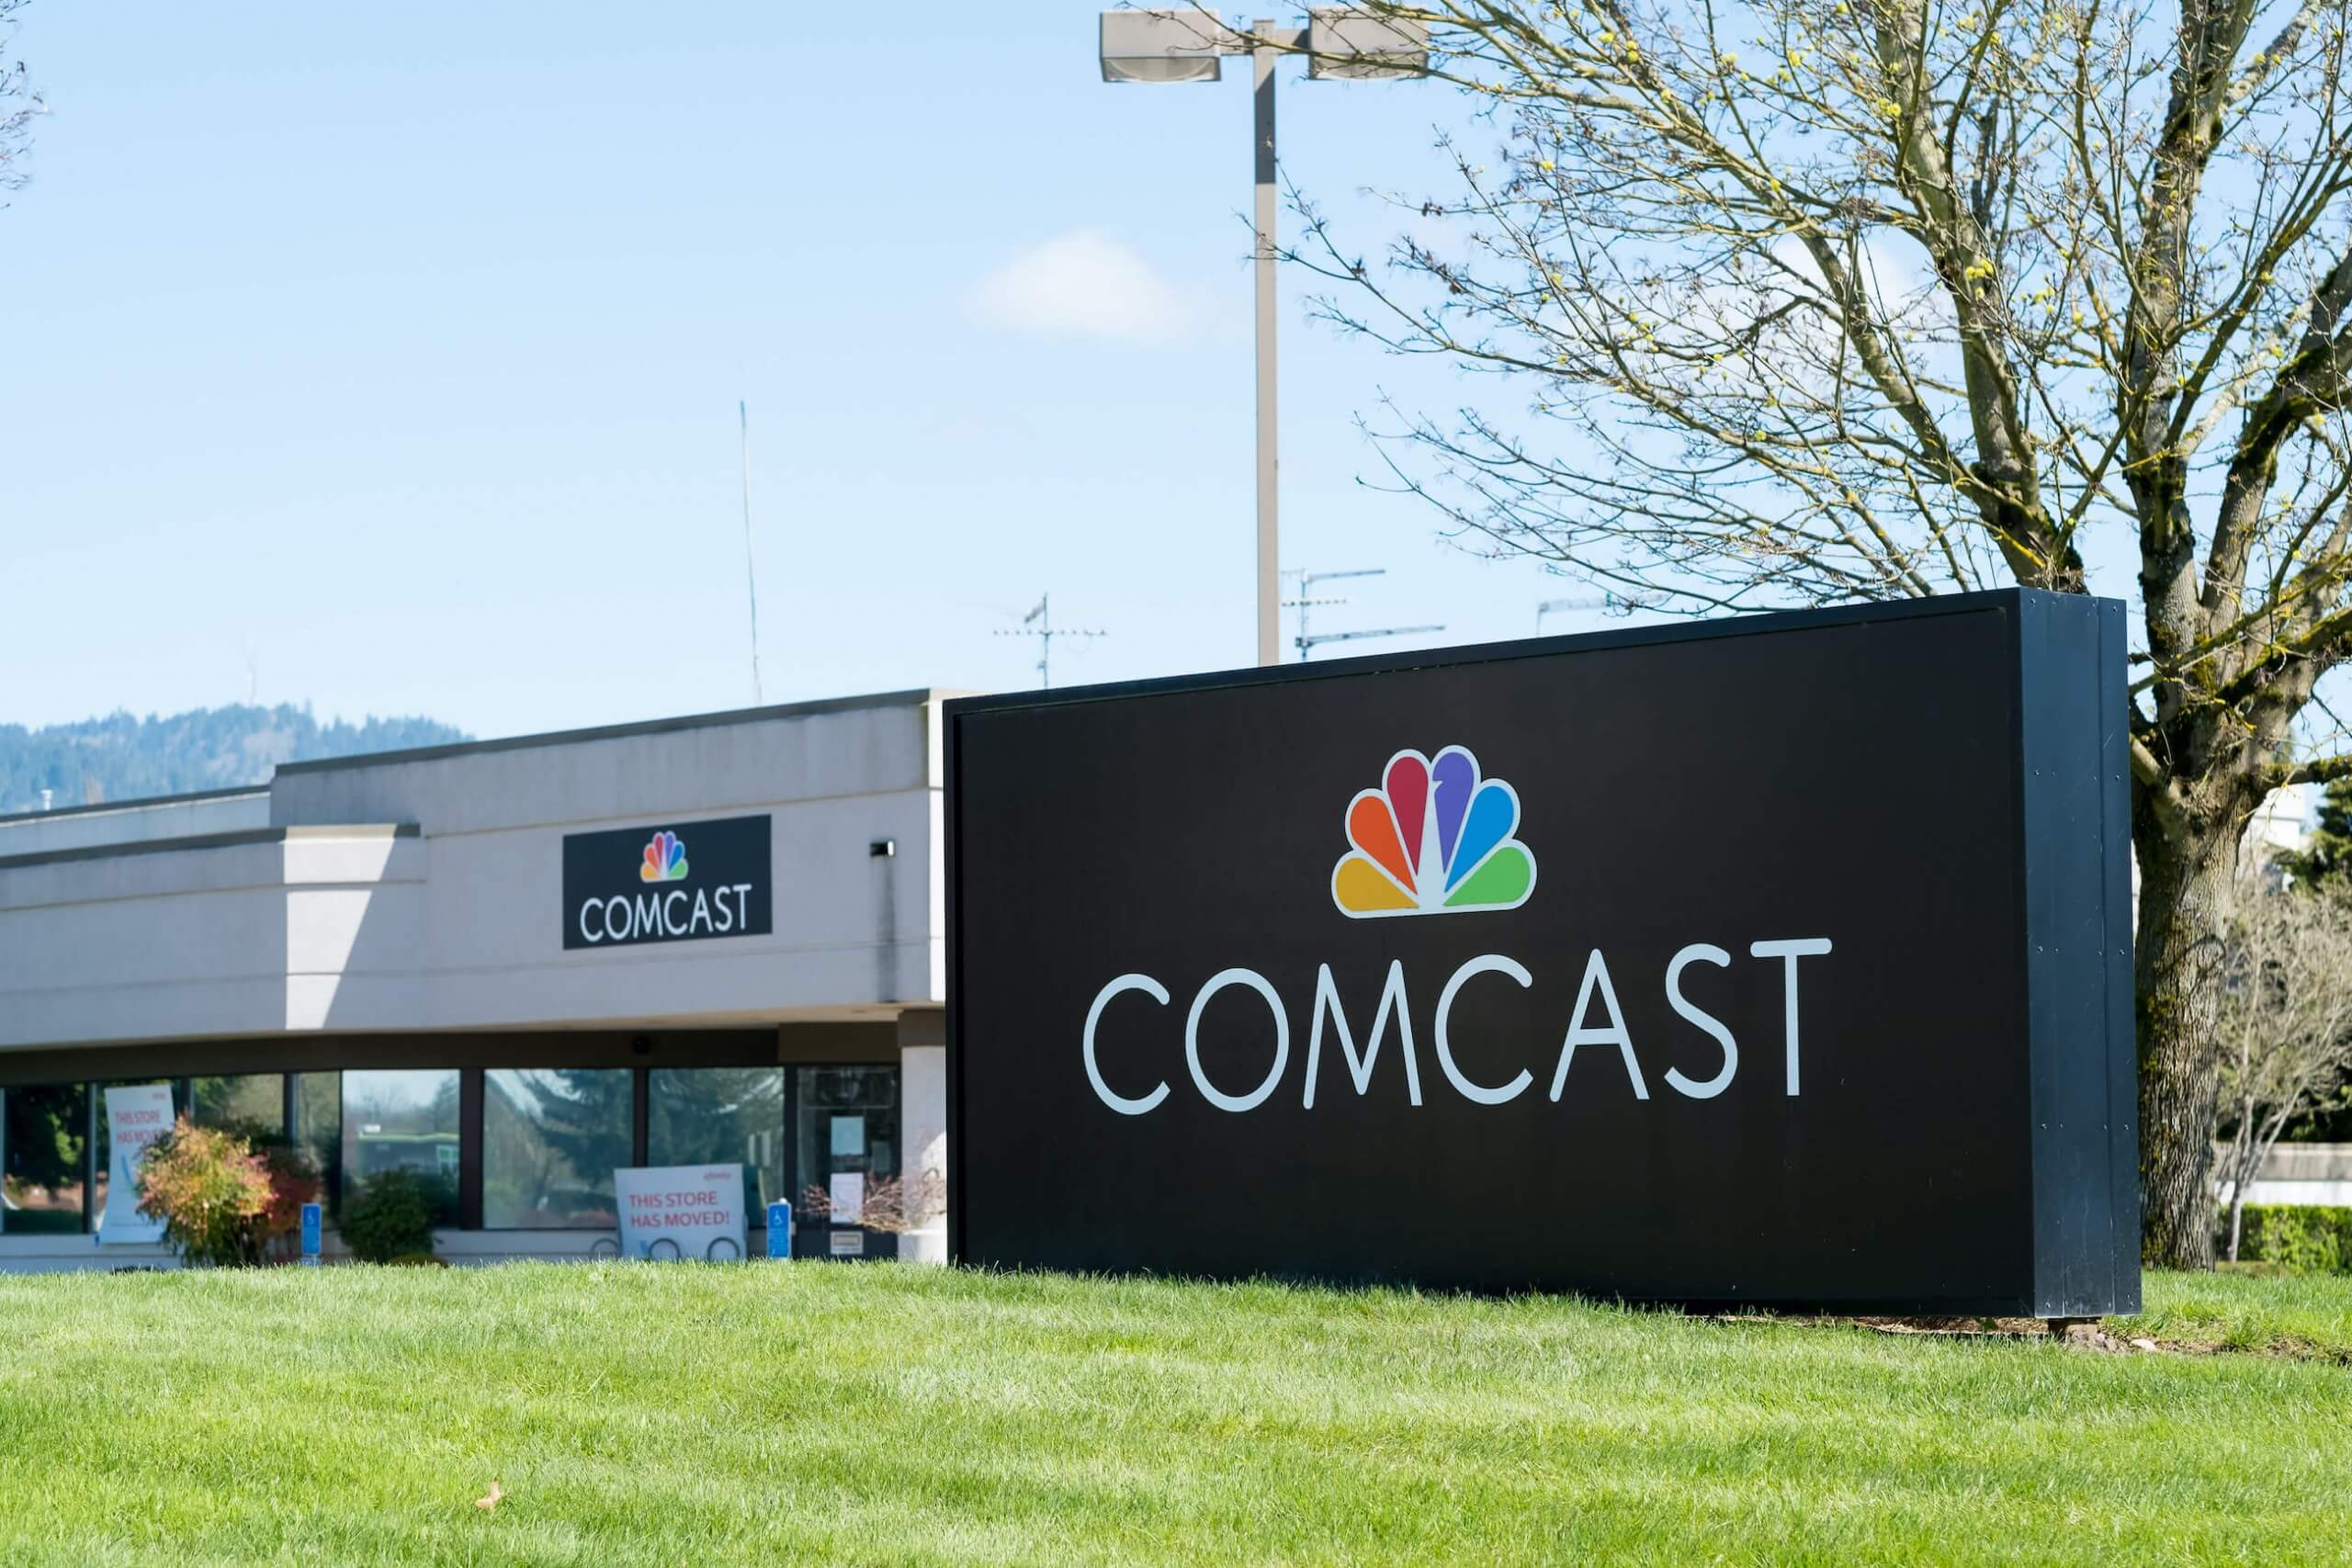 Comcast is jacking up its prices again thanks to NBC's Peacock streaming service